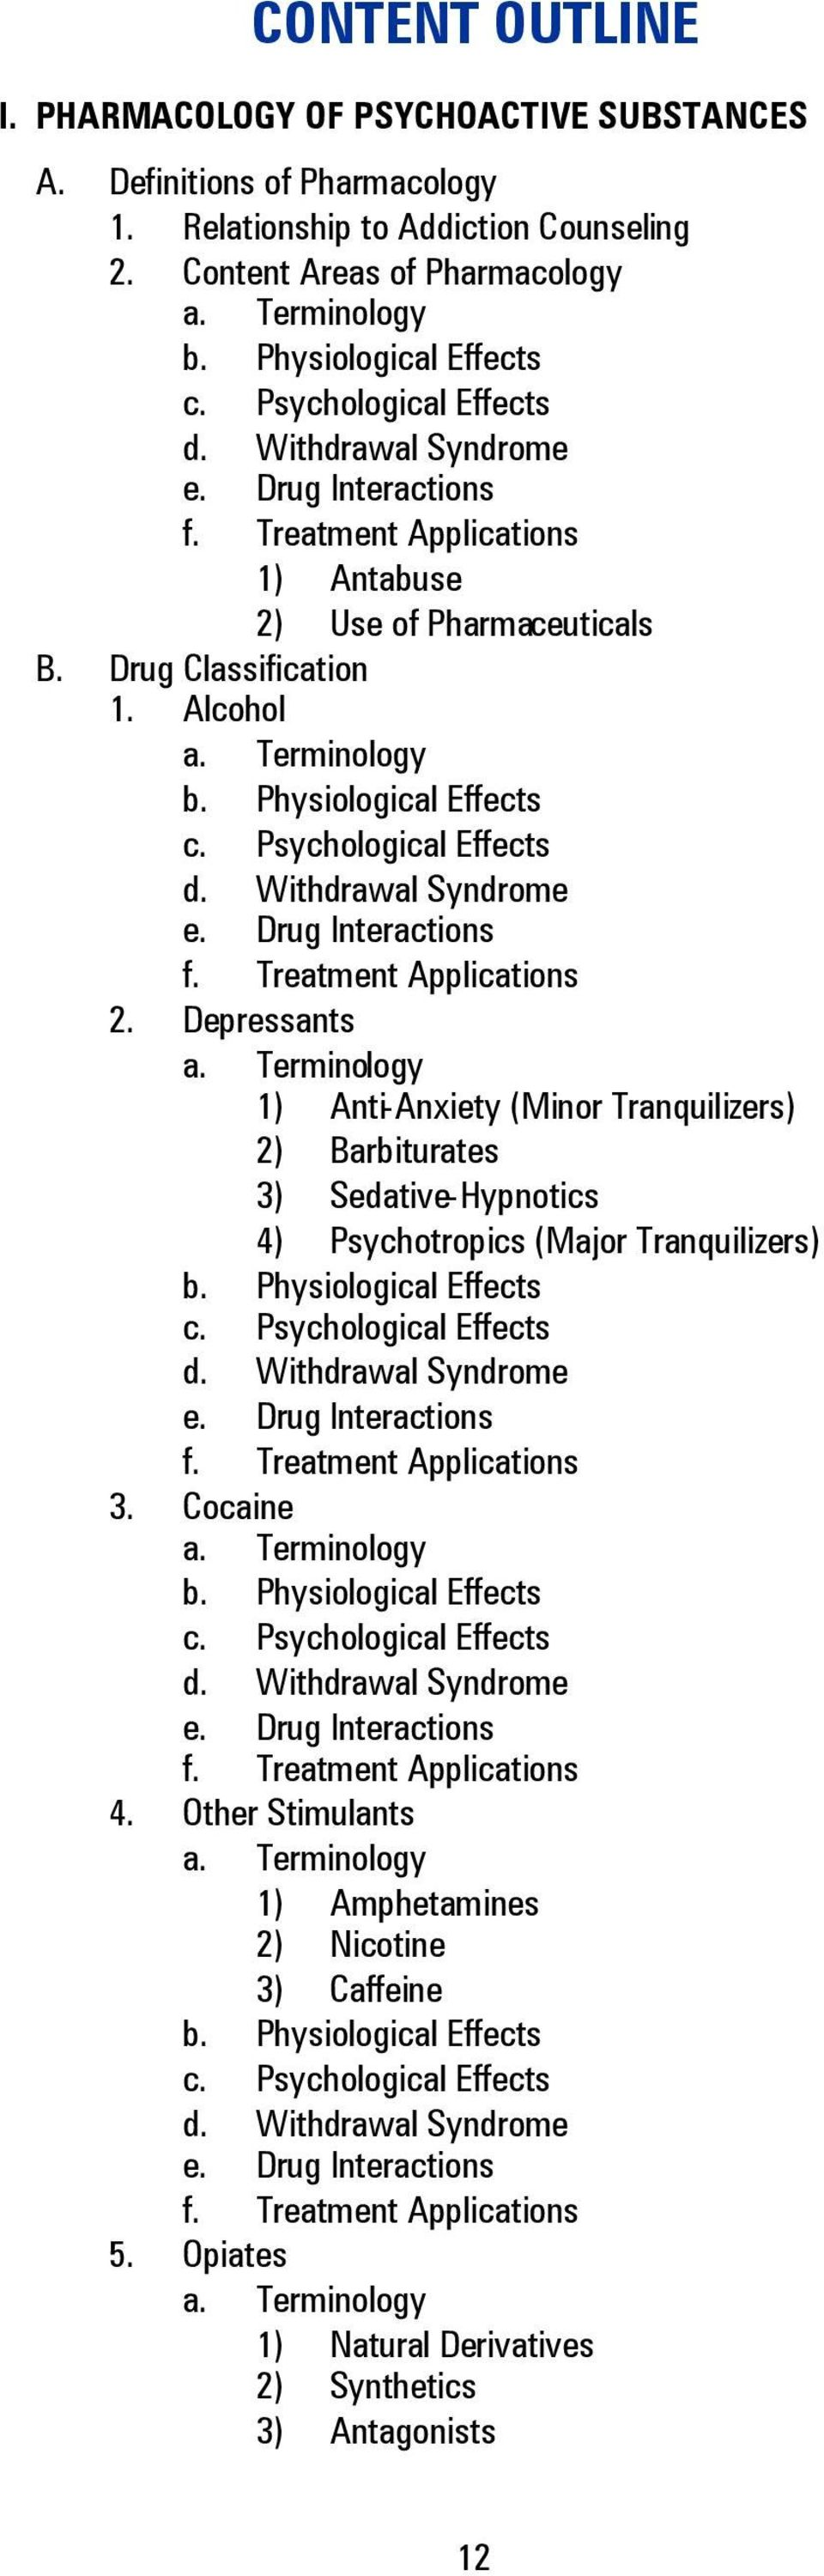 Terminology b. Physiological Effects c. Psychological Effects d. Withdrawal Syndrome e. Drug Interactions f. Treatment Applications 2. Depressants a.